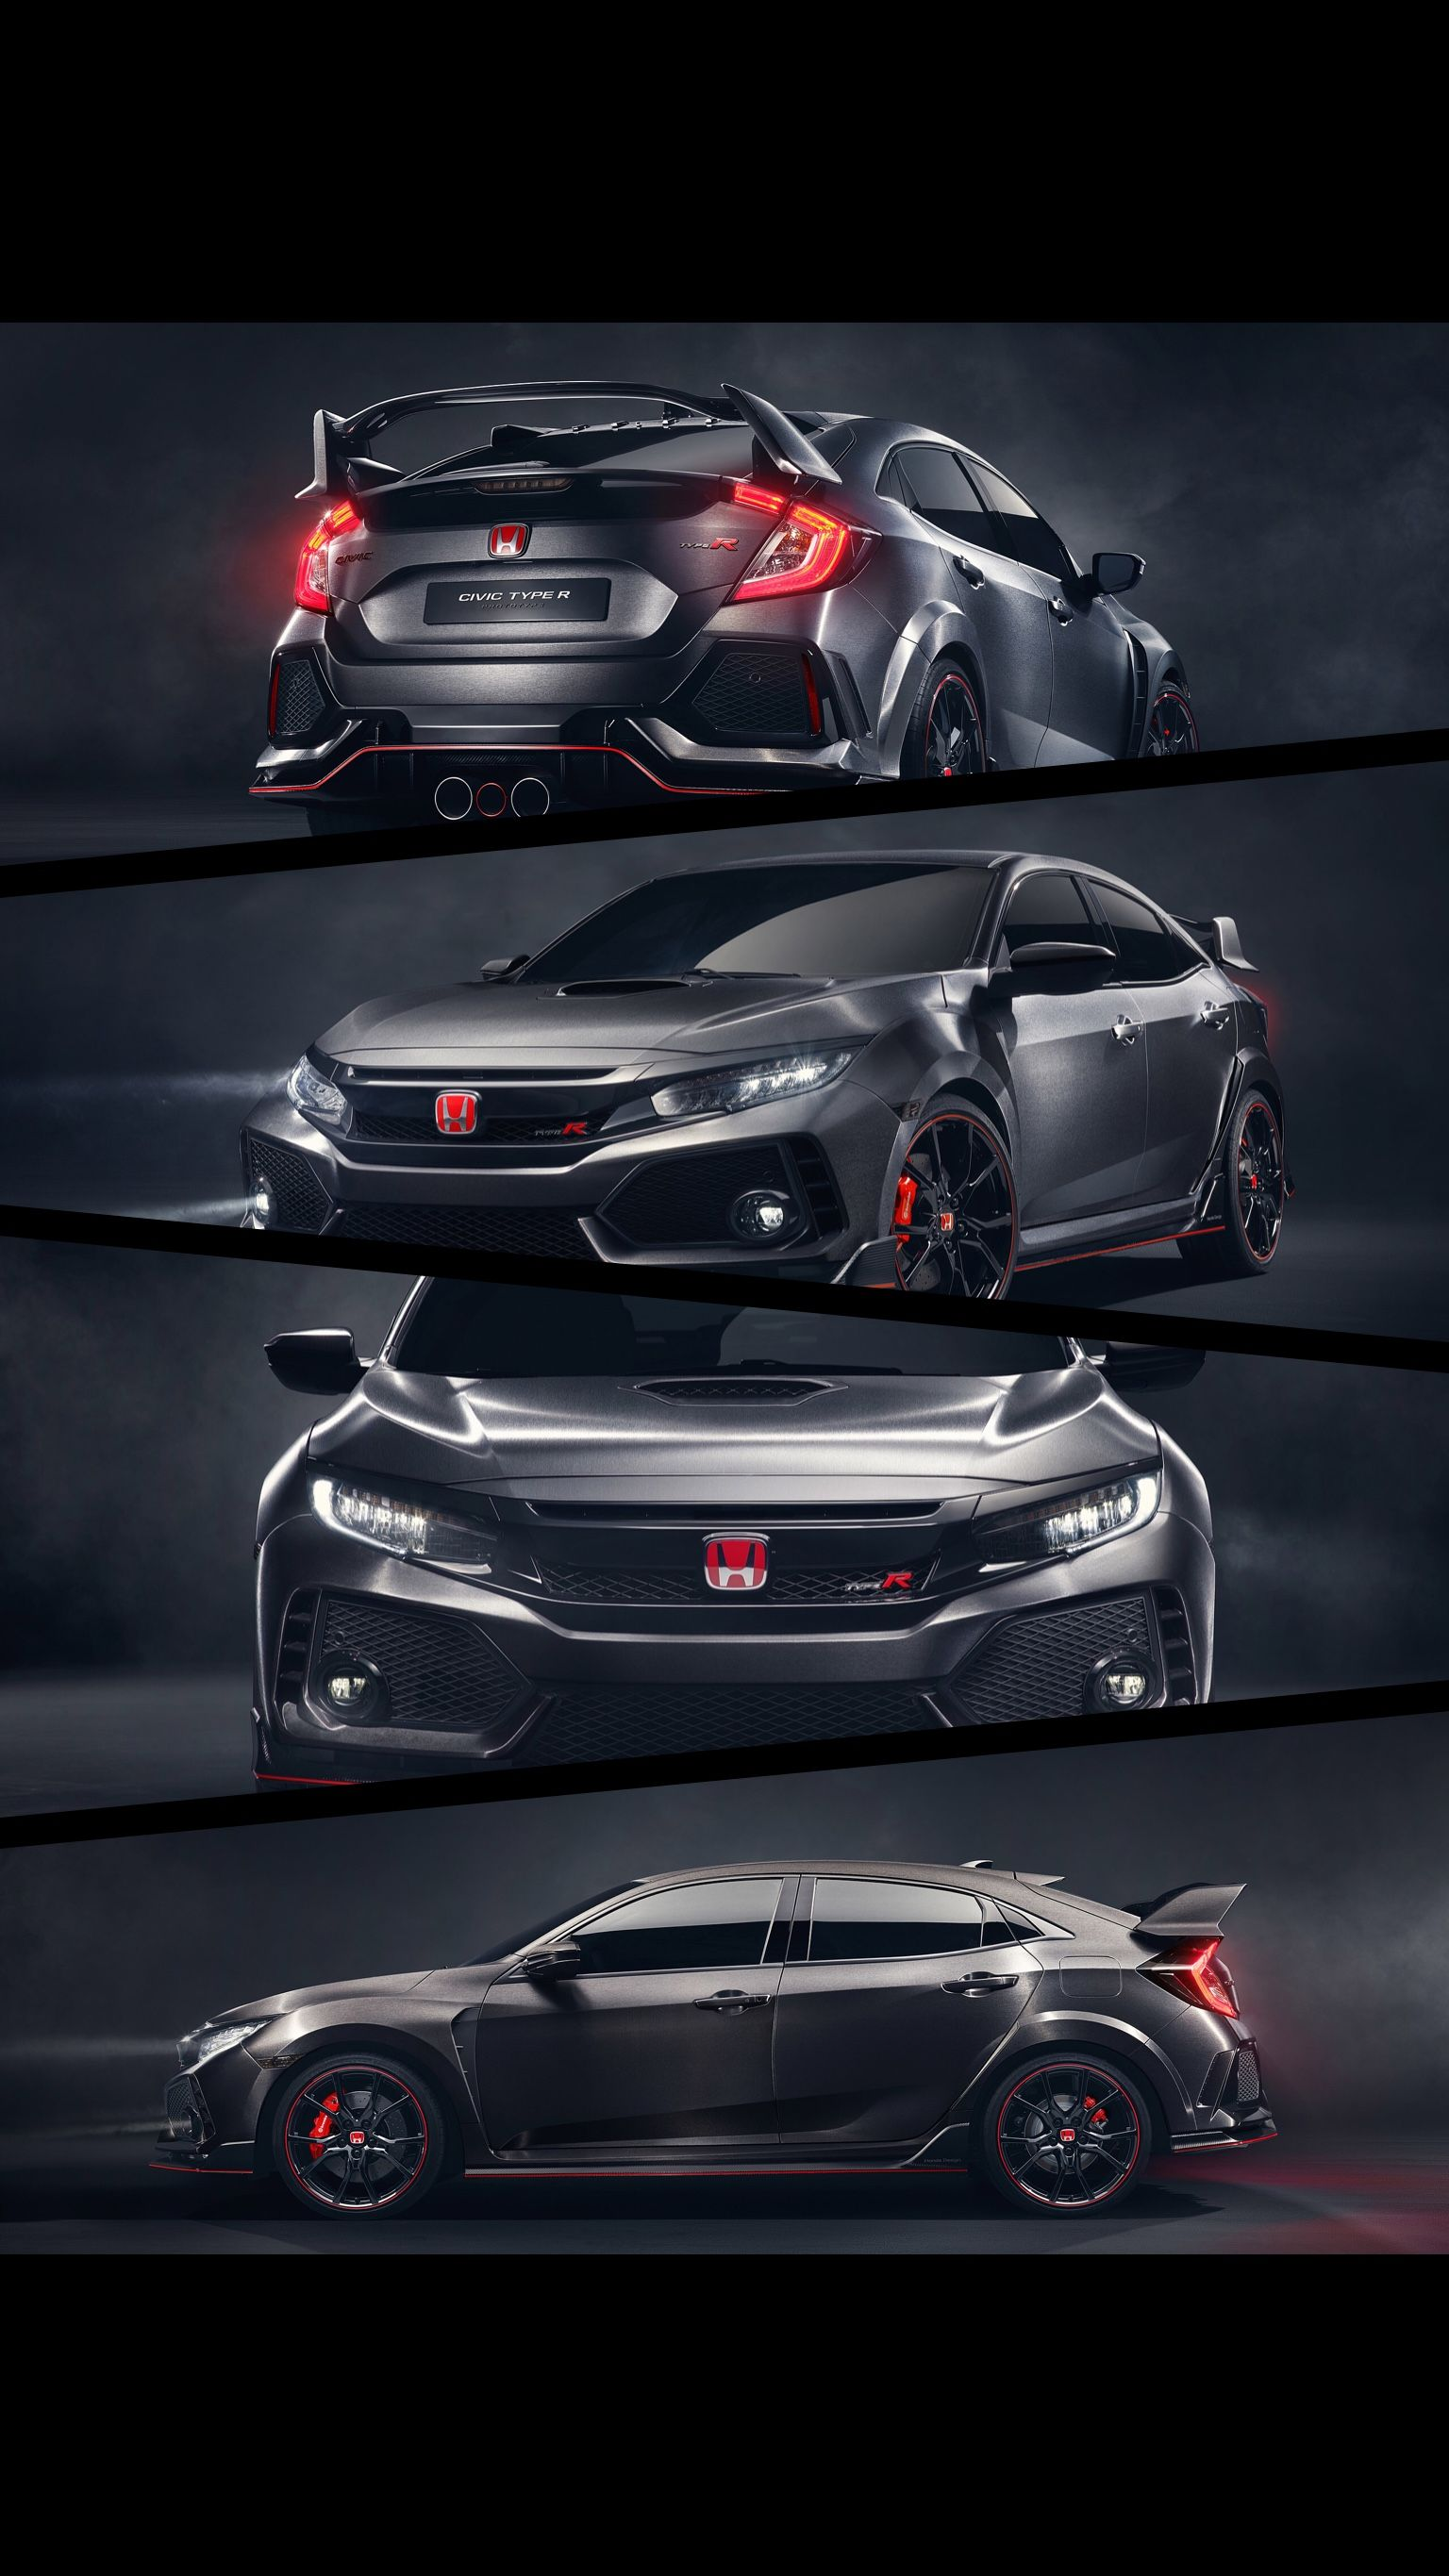 black honda civic hd desktop wallpaper widescreen high | wallpapers